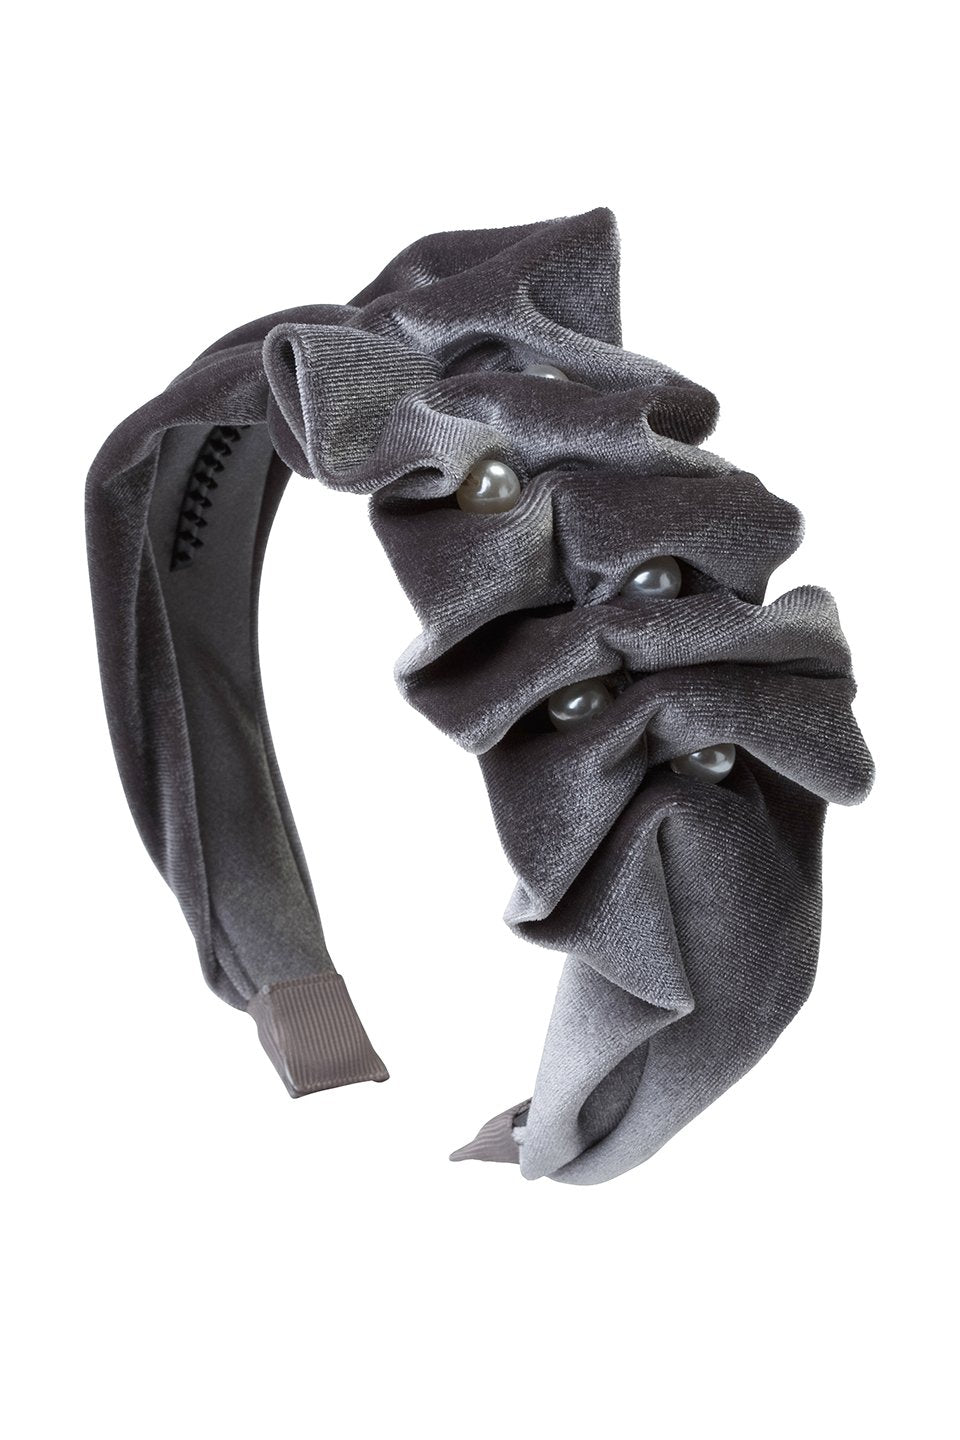 Ruffled Pearl Velvet Headband - Grey - PROJECT 6, modest fashion